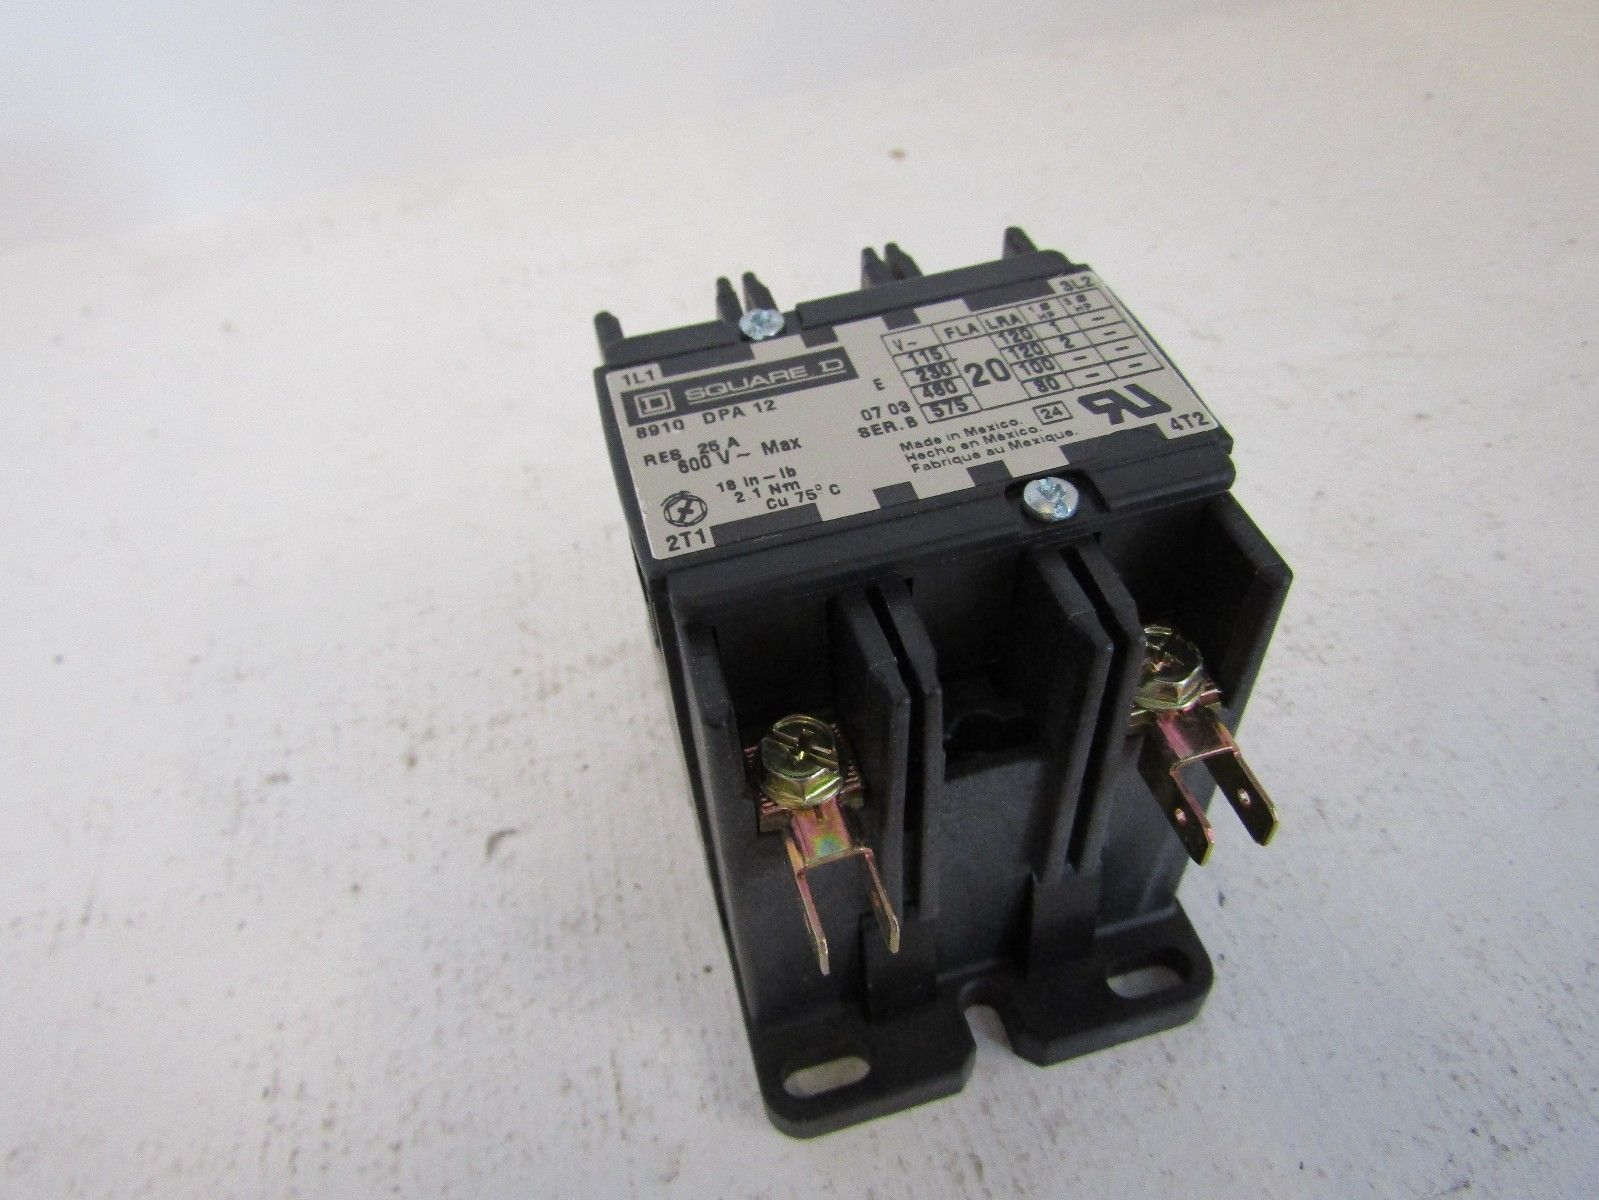 NEW SQUARE D 8910DPA12V14 2 POLE 20 AMP DEFINITE PURPOSE CONTACTOR 24 VOLT COIL 231740007036 3?fit\\\\\\\\\\\\\\\=1000%2C750\\\\\\\\\\\\\\\&ssl\\\\\\\\\\\\\\\=1 2 pole 2wire diagram wiring diagrams 2Wire Thermostat Wiring Diagram at suagrazia.org